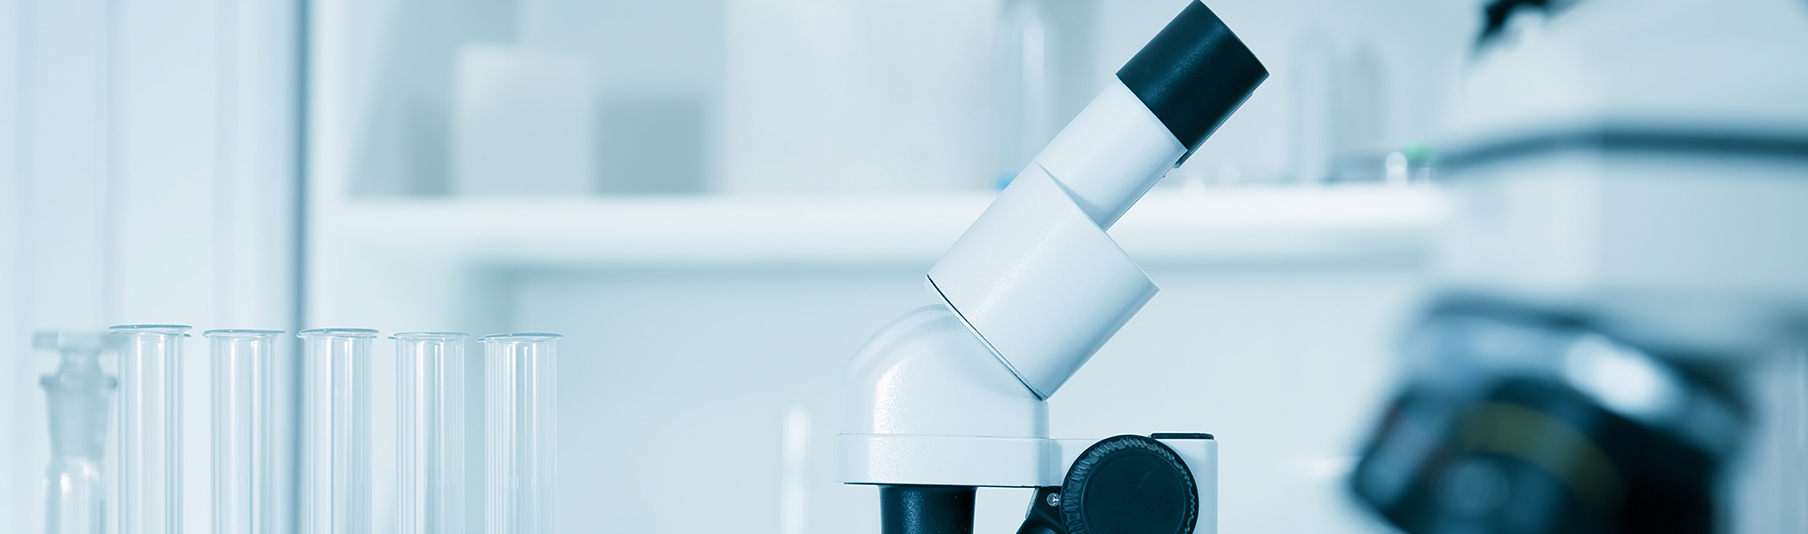 Medical Technology Insurance: A microscope next to a row of beakers